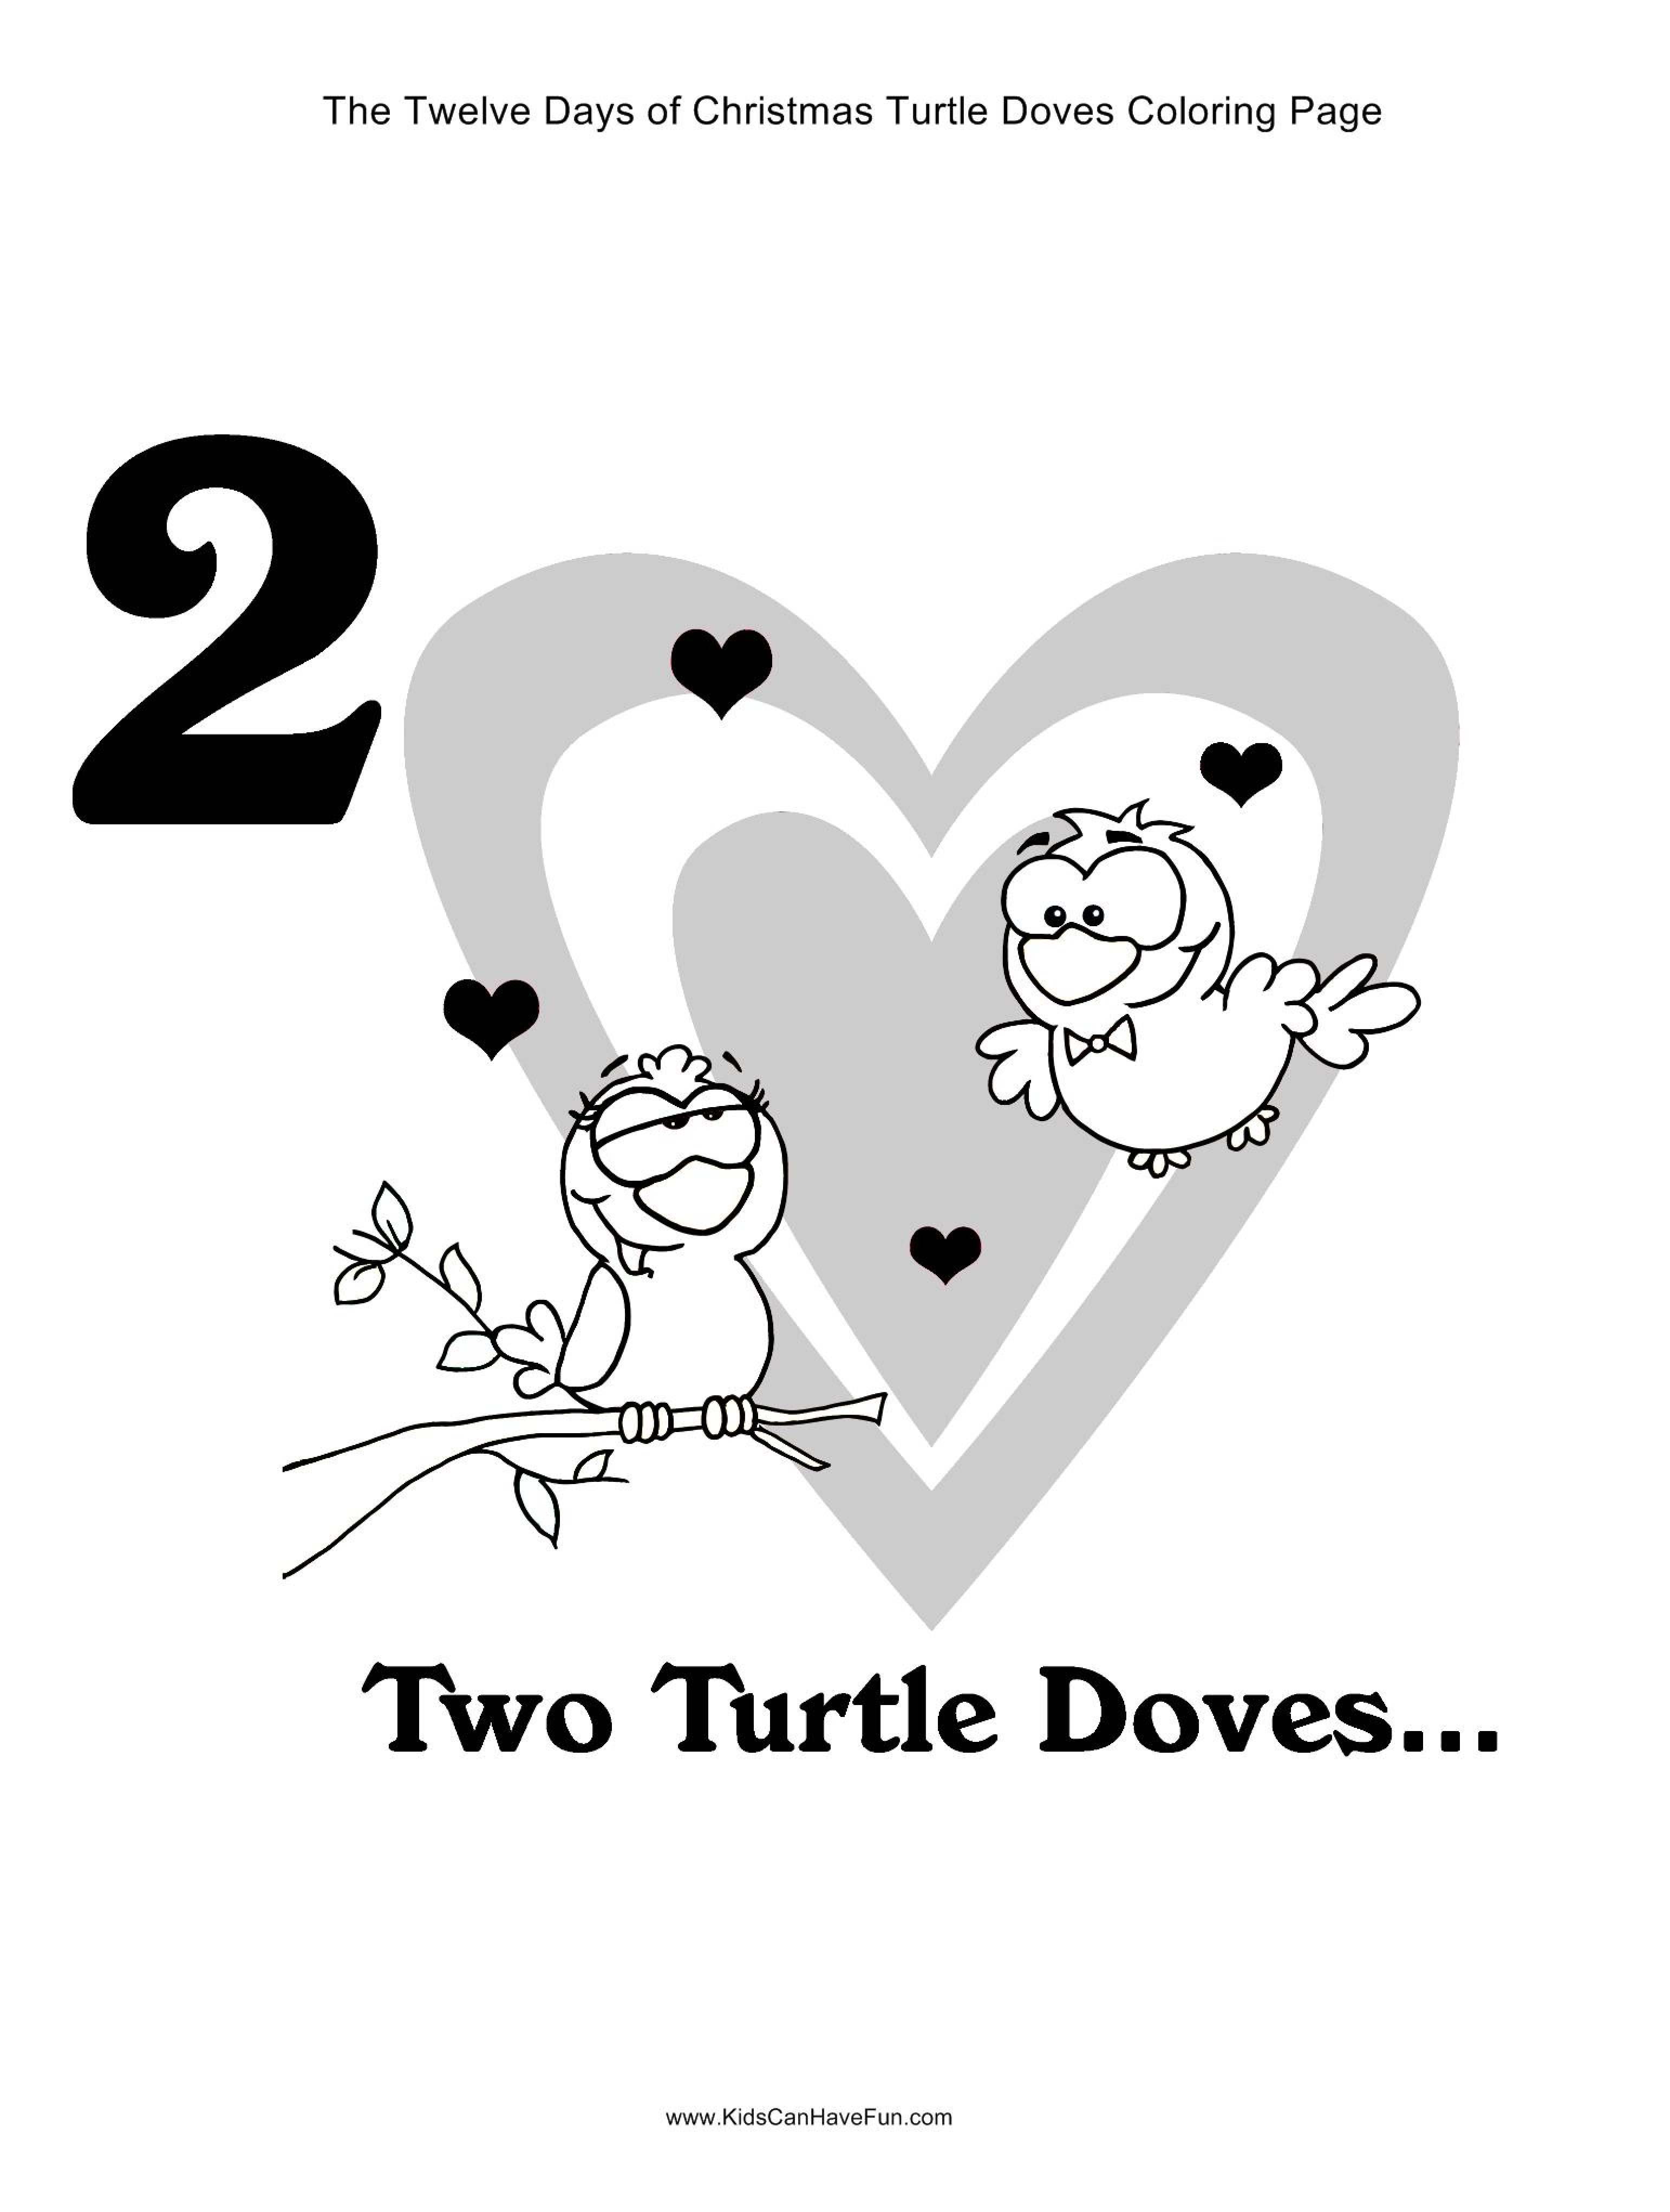 12 Days Of Christmas Two Turtle Doves Coloring Page